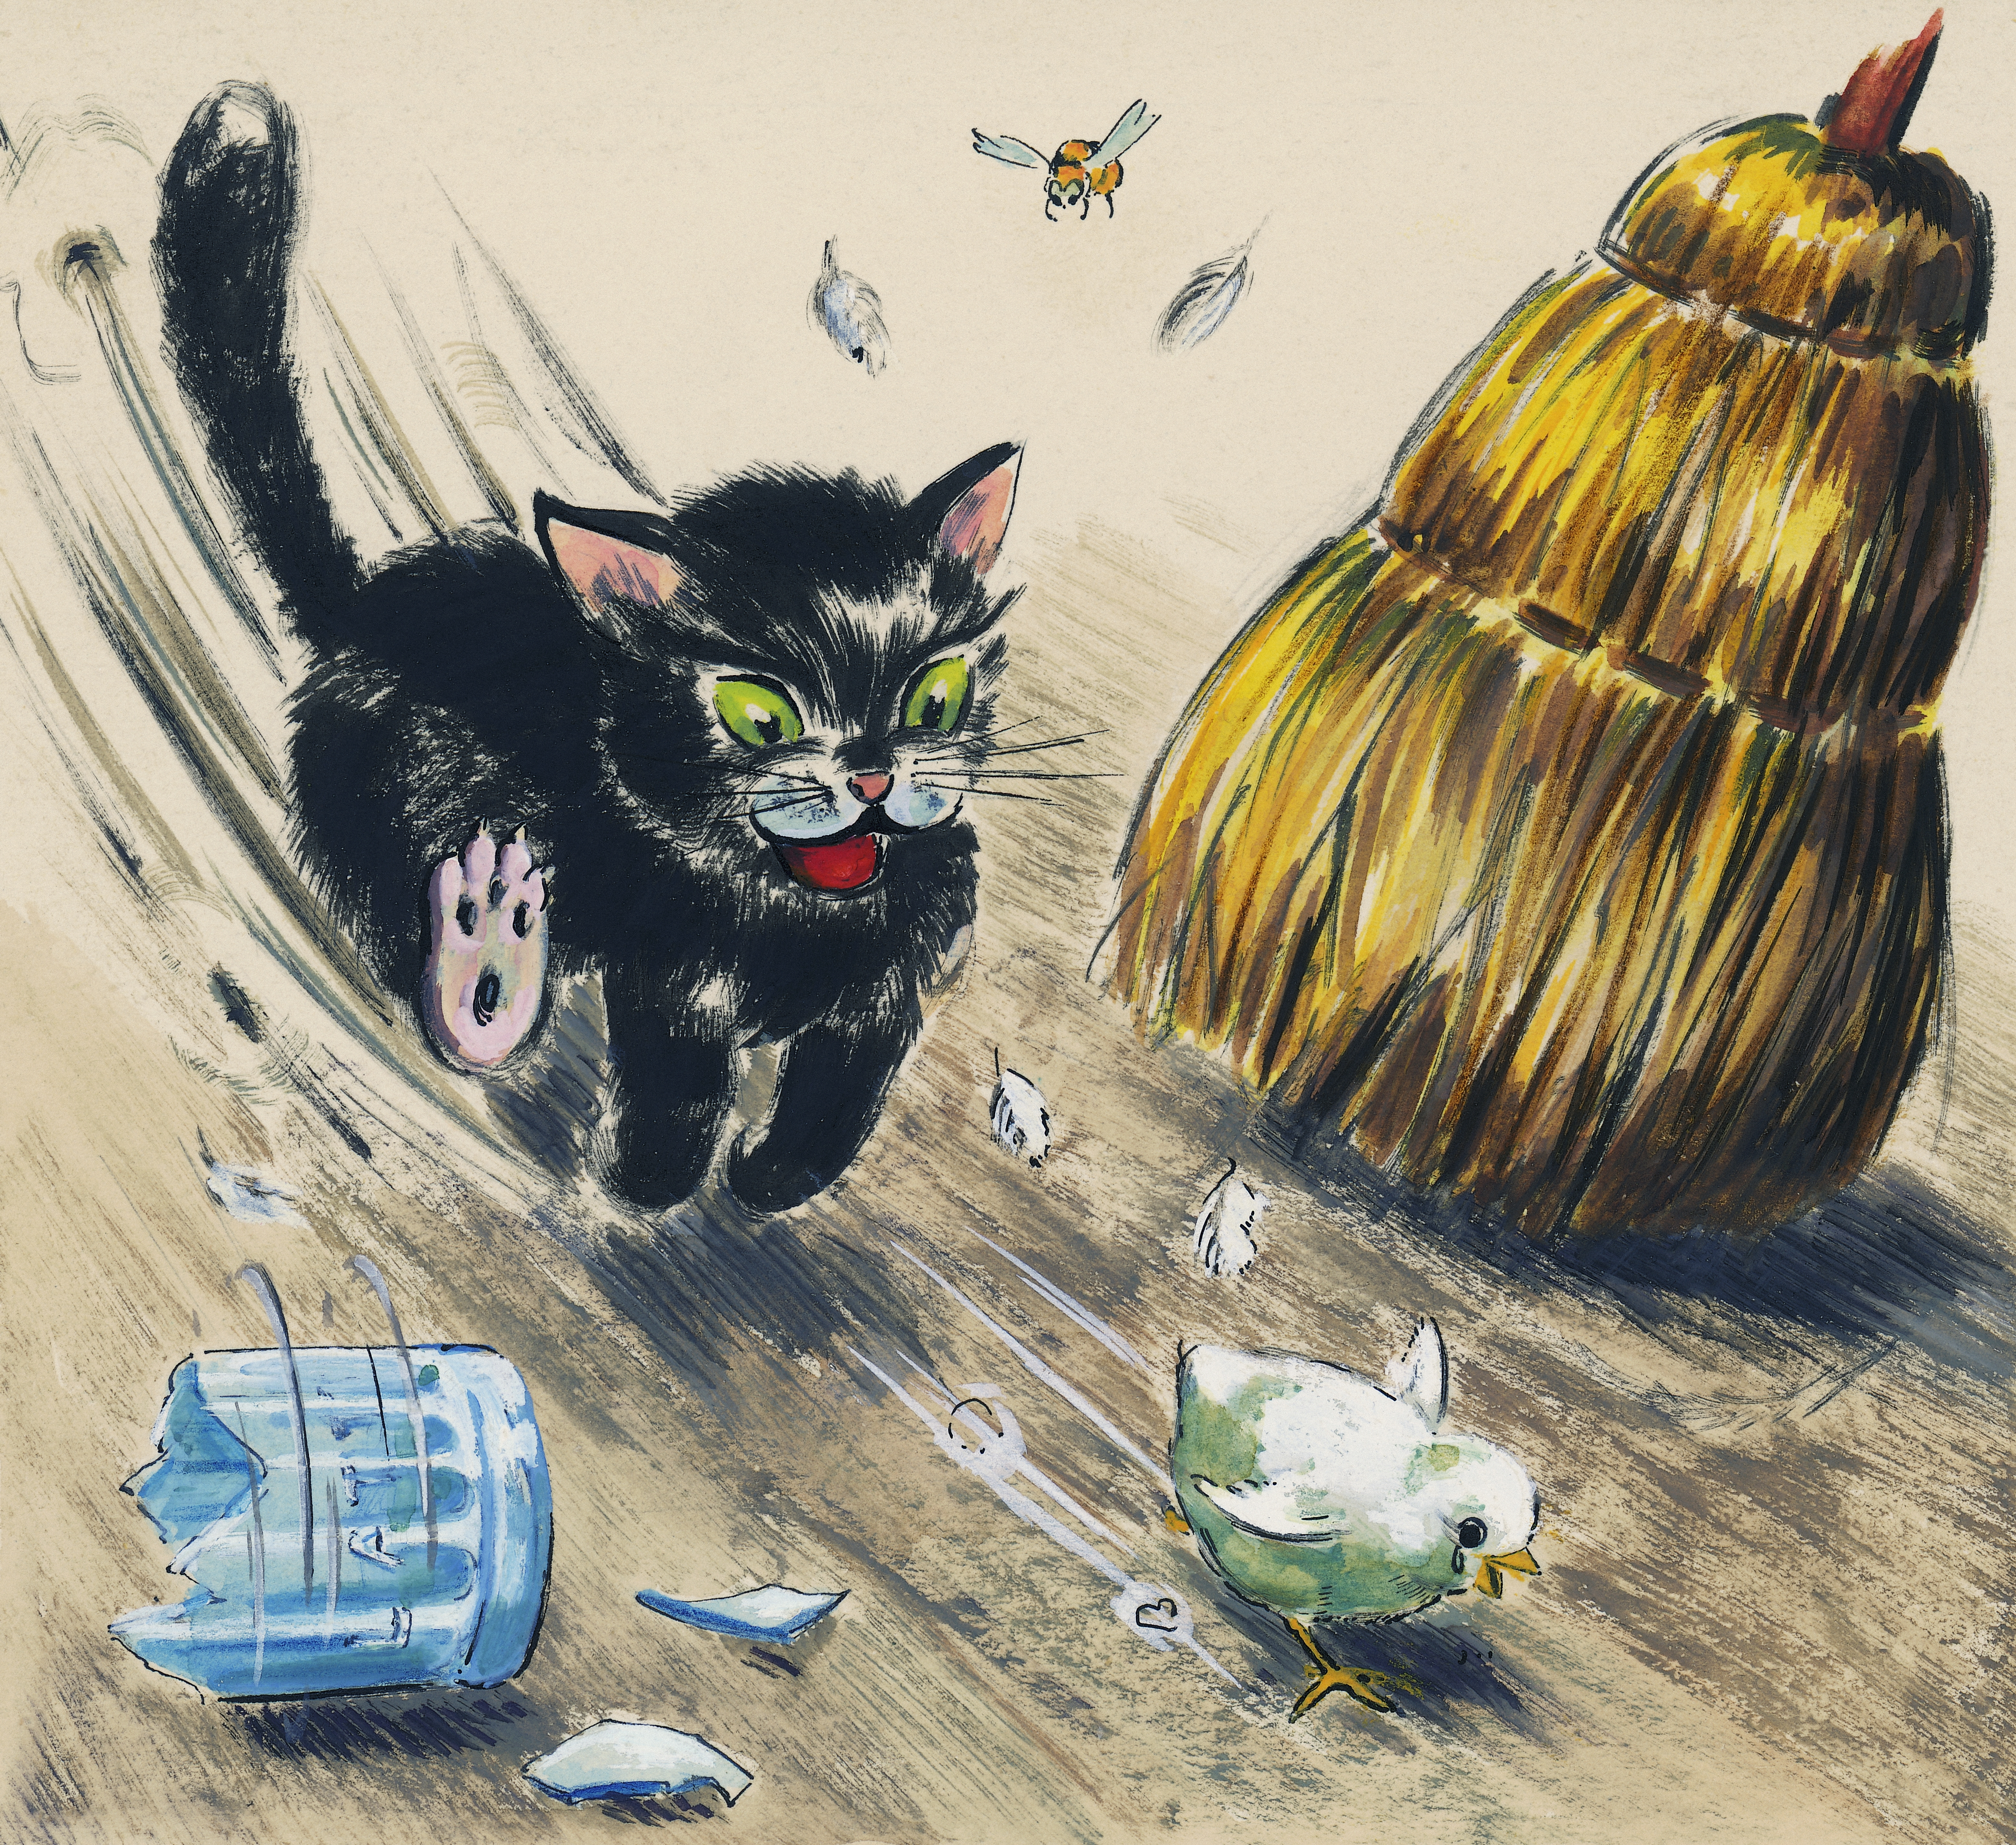 Cat chasing chick, children's illustration, drawing